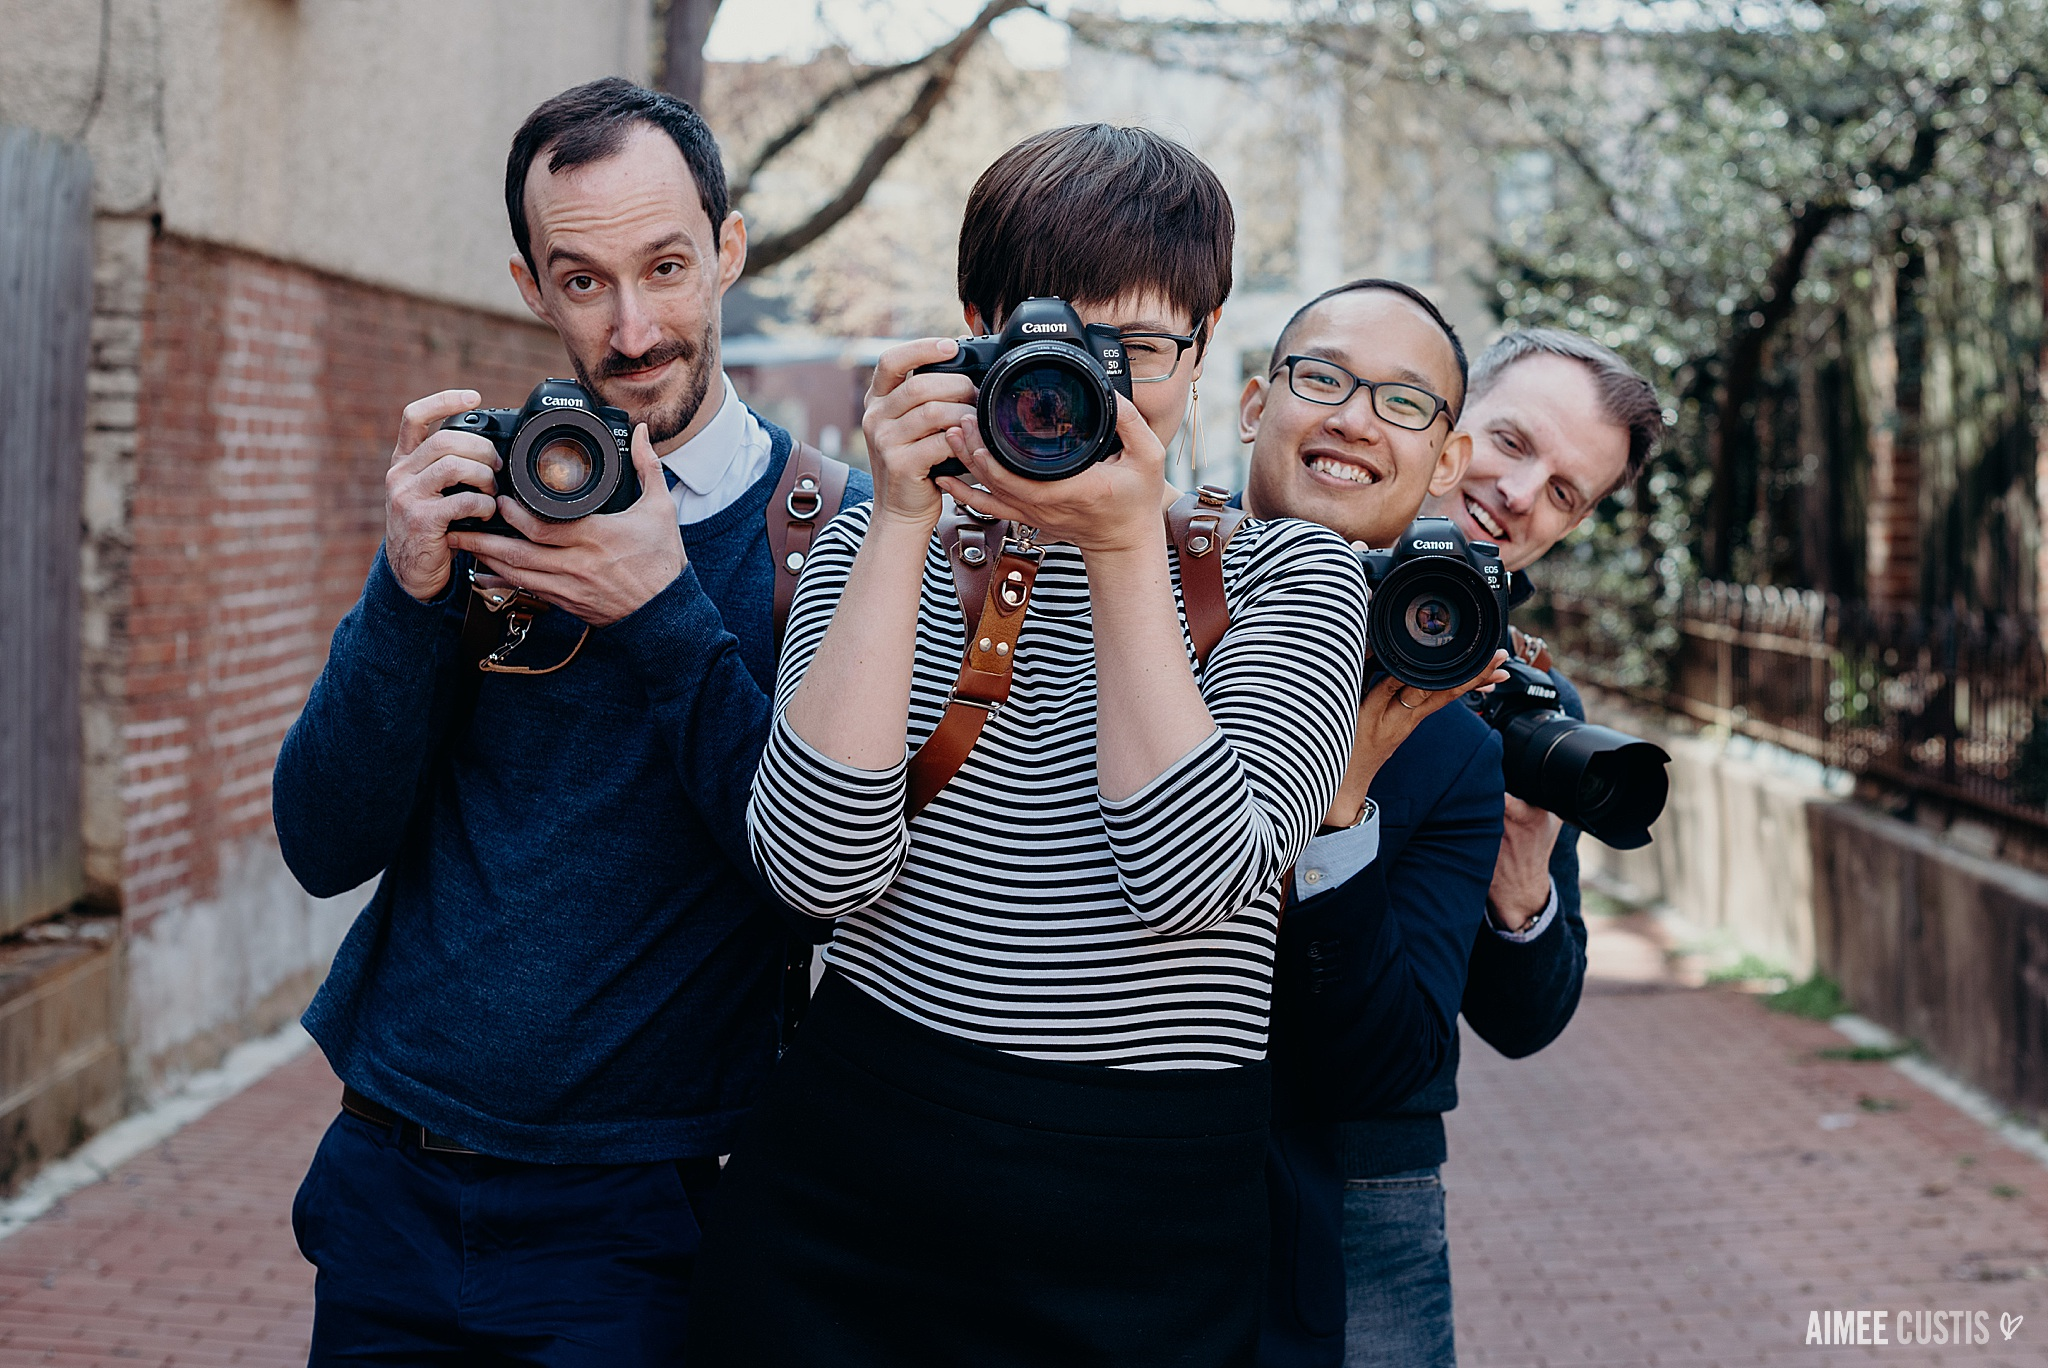 Another crazy thing: I taught my first workshop this spring! The whole team (plus some other great photographers) came out. And in between sessions, we had a bit of fun. Behind every strong woman is… three incredibly goofy-yet-talented men?